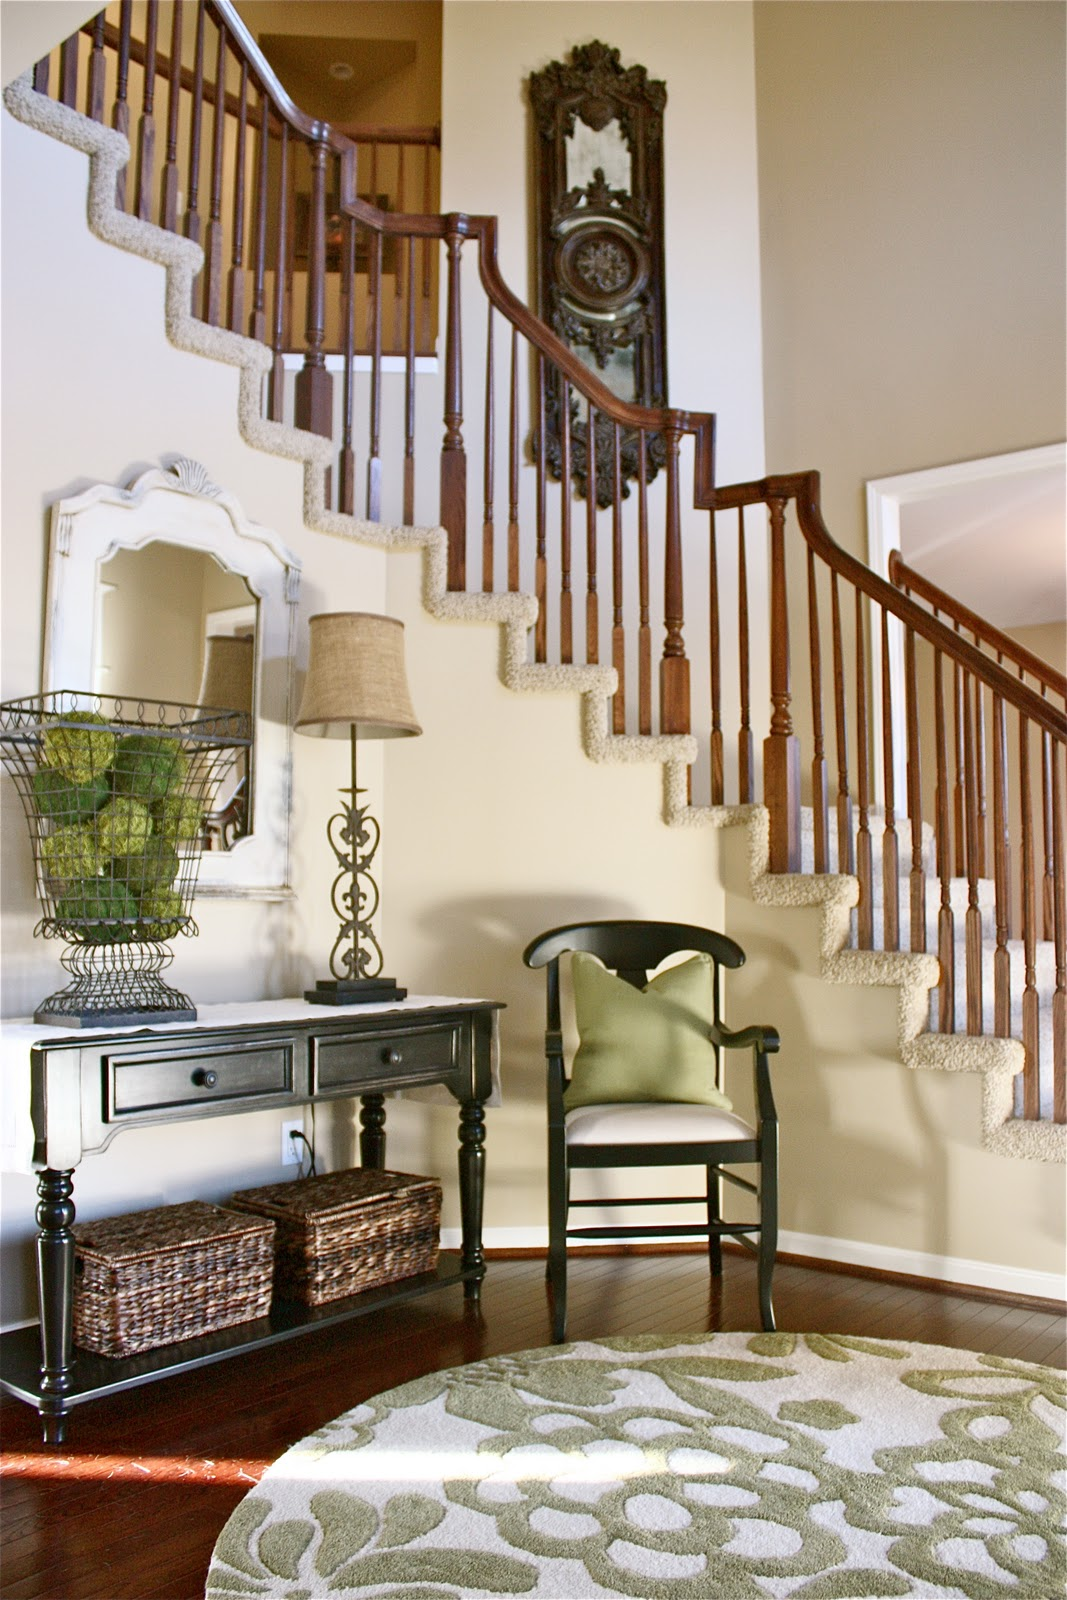 Entrance And Foyer : Entryway essentials lindsay hill interiors